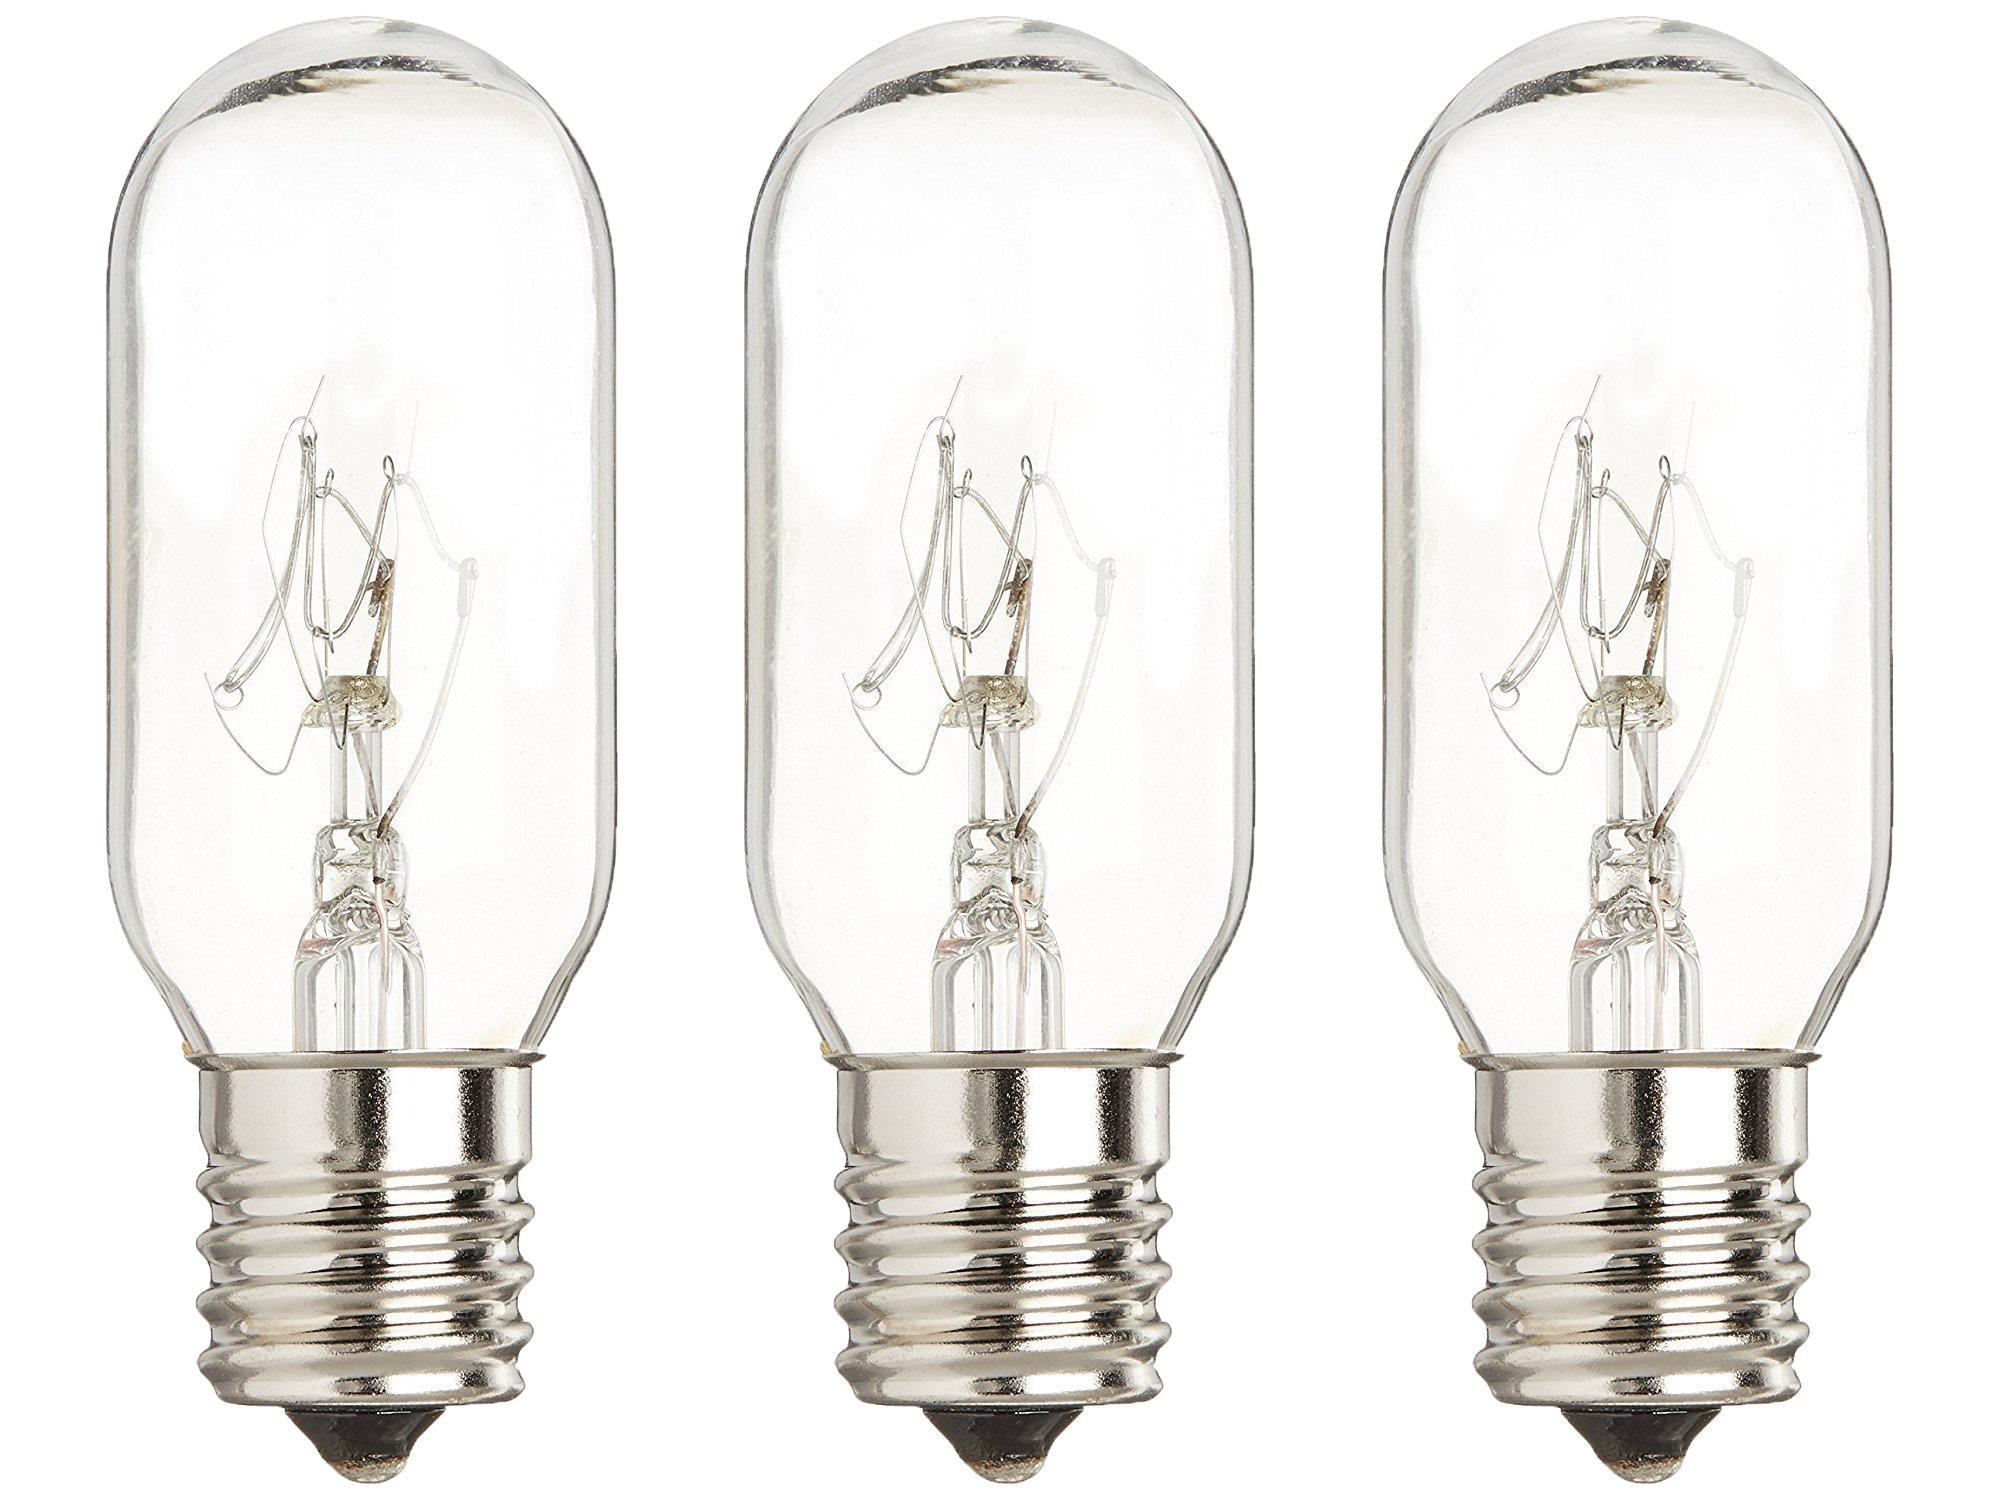 3 PACK of WB36X10003 General Electric Microwave Light Bulb Lamp 40 Watt 130 Volts